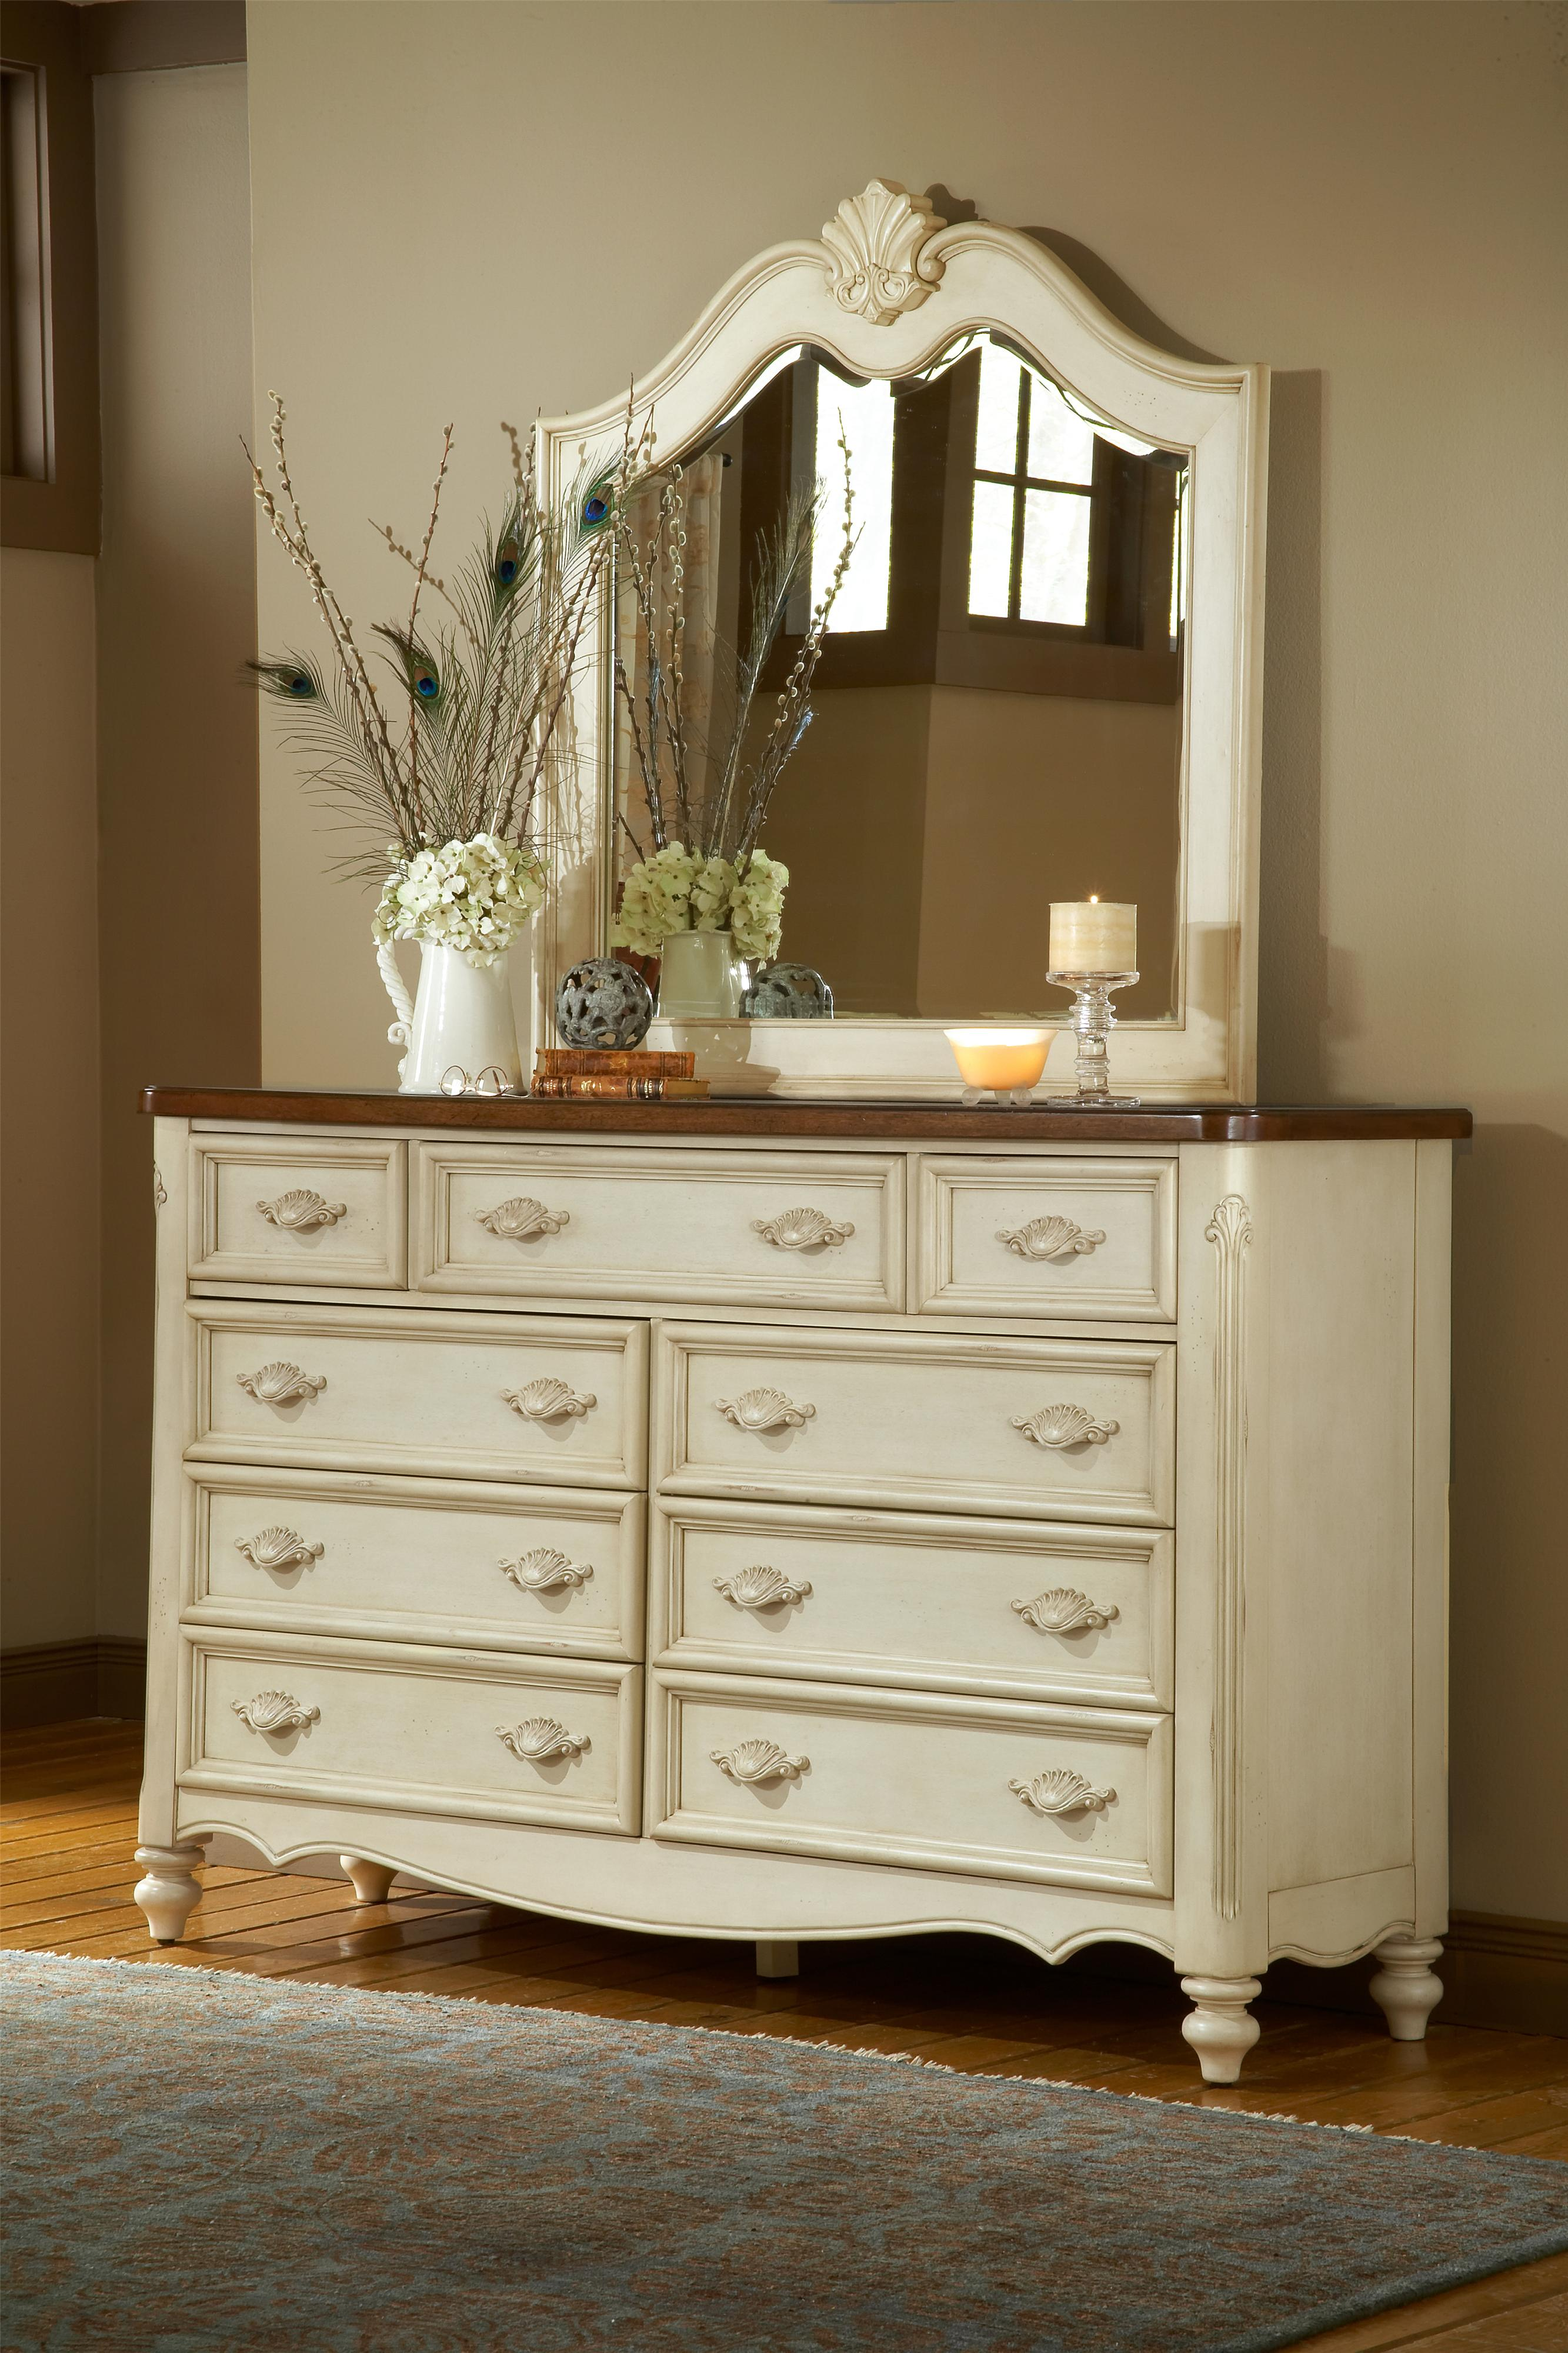 American Woodcrafters Chateau Triple Front Nine-Drawer Dresser and Mirror - Item Number: 3501-290+040